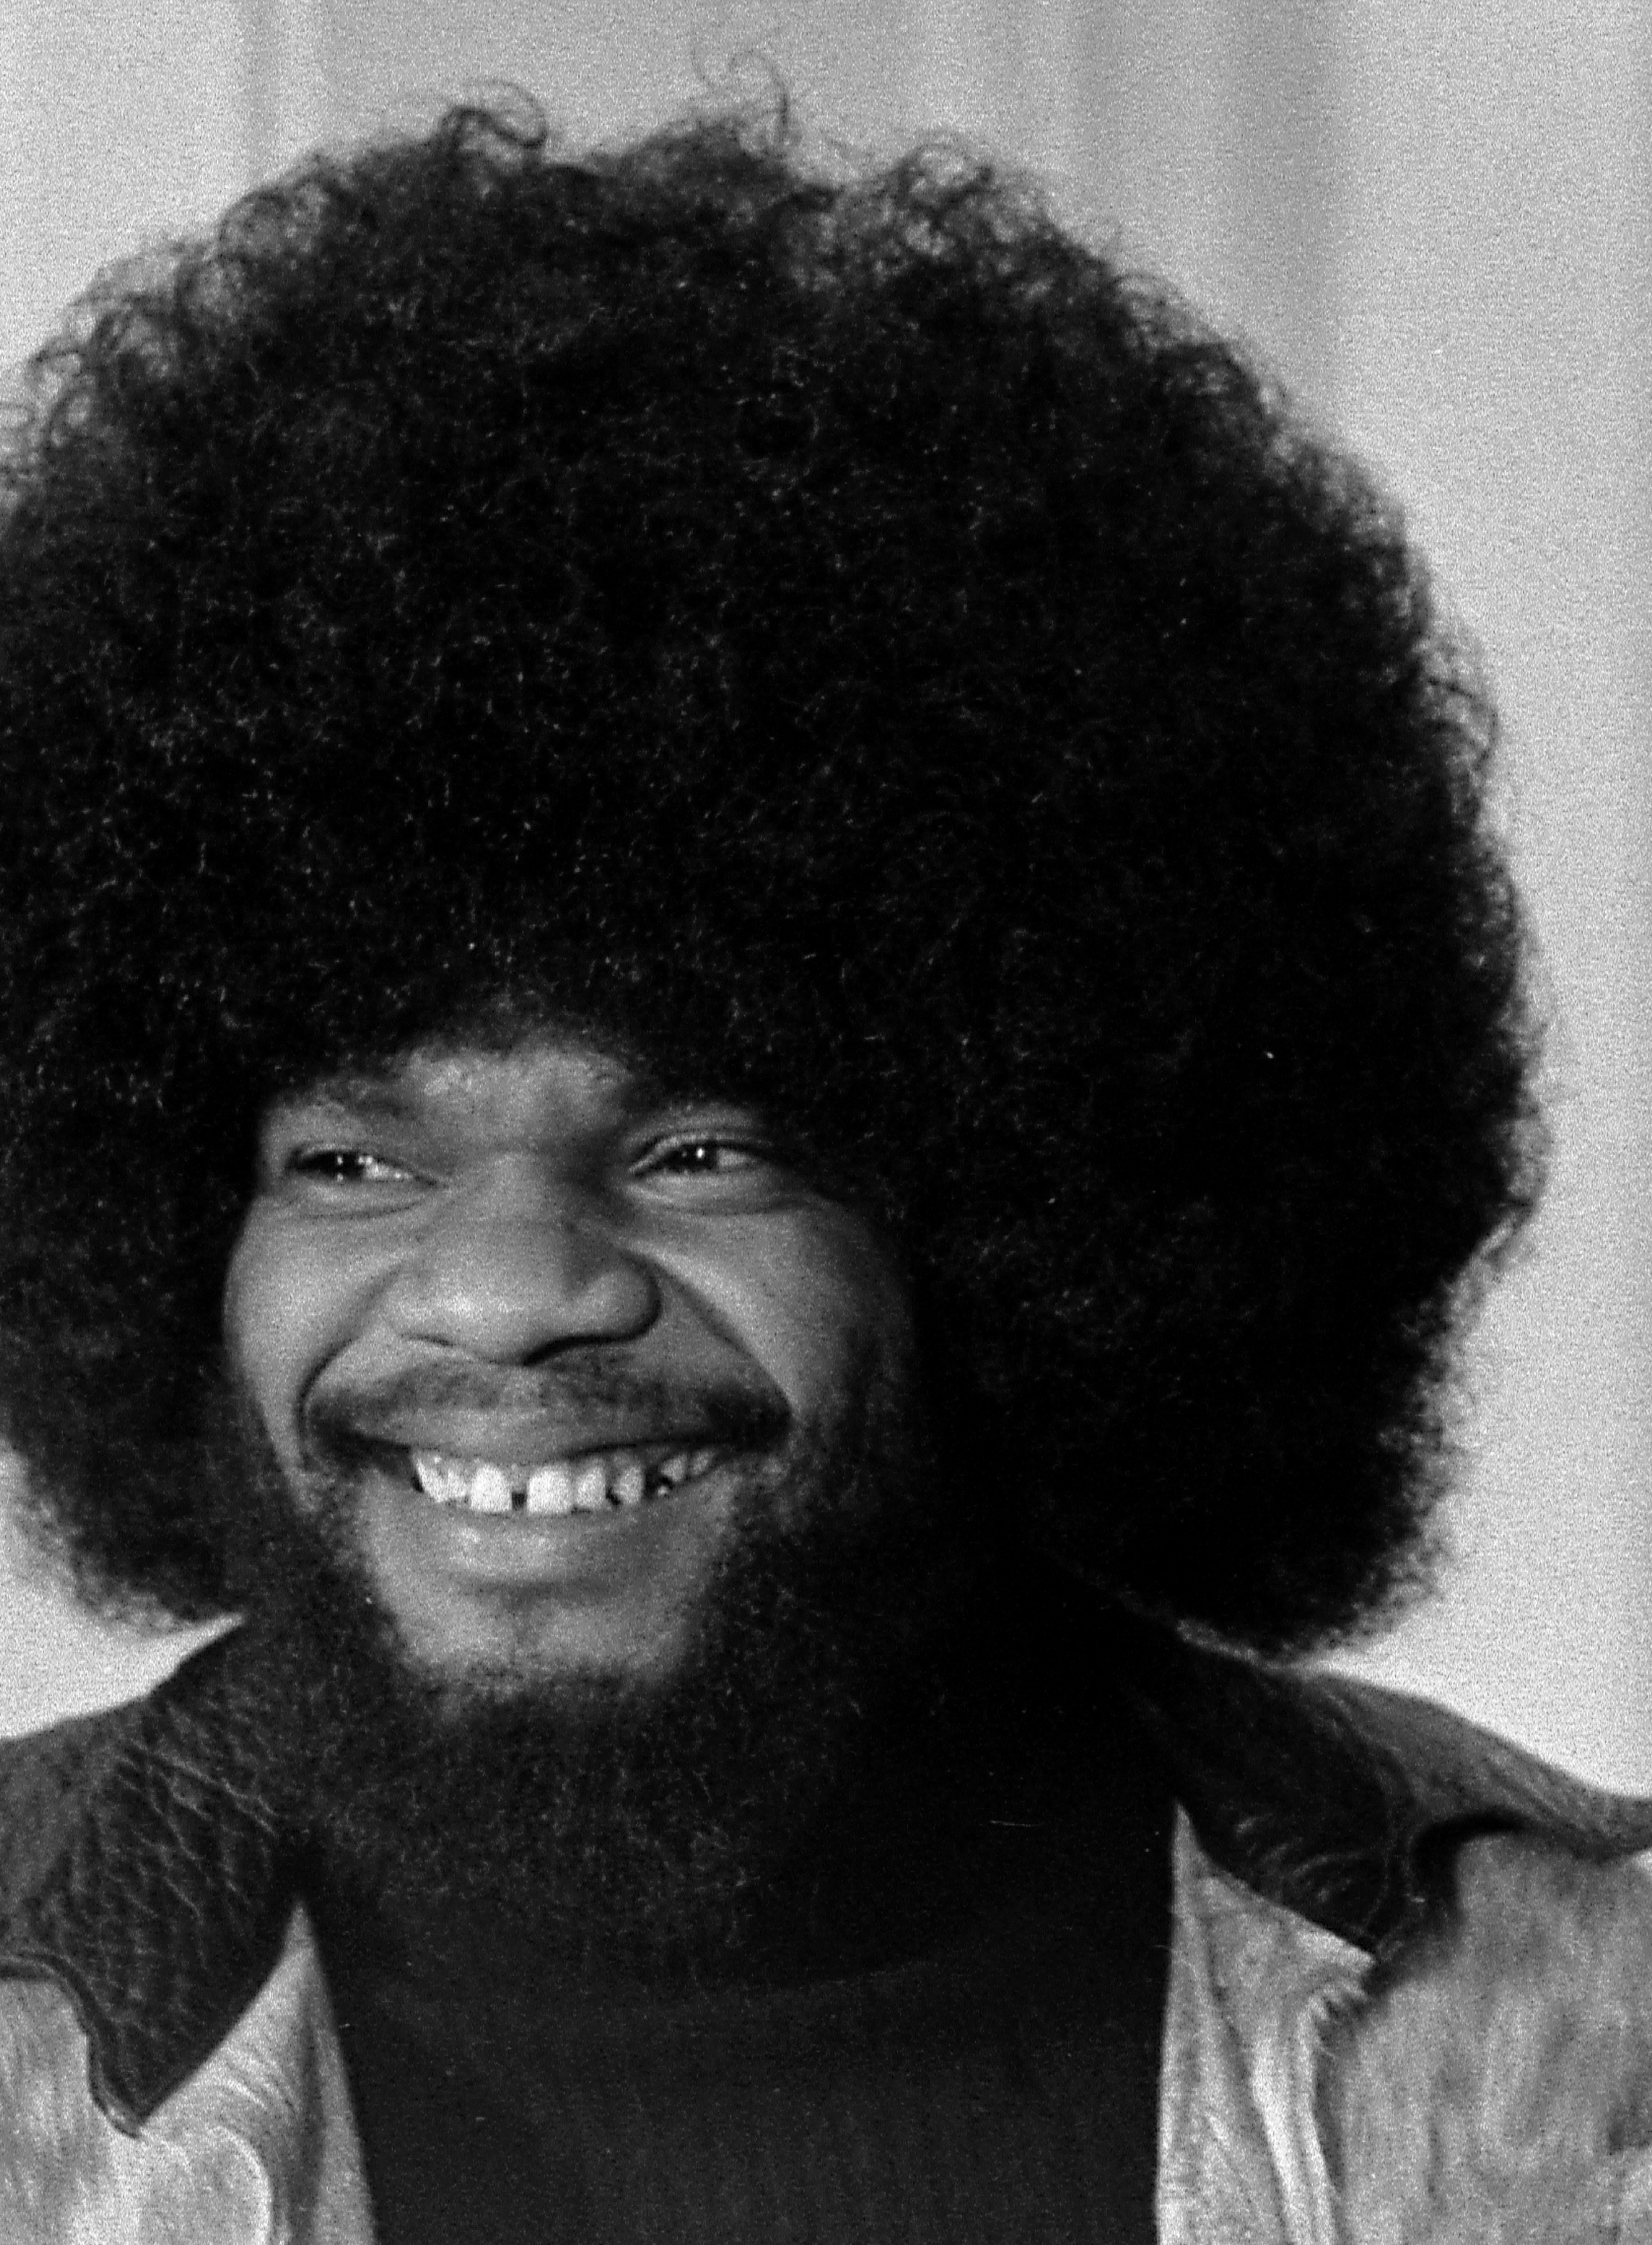 File:Billy Preston.jpg - Wikipedia